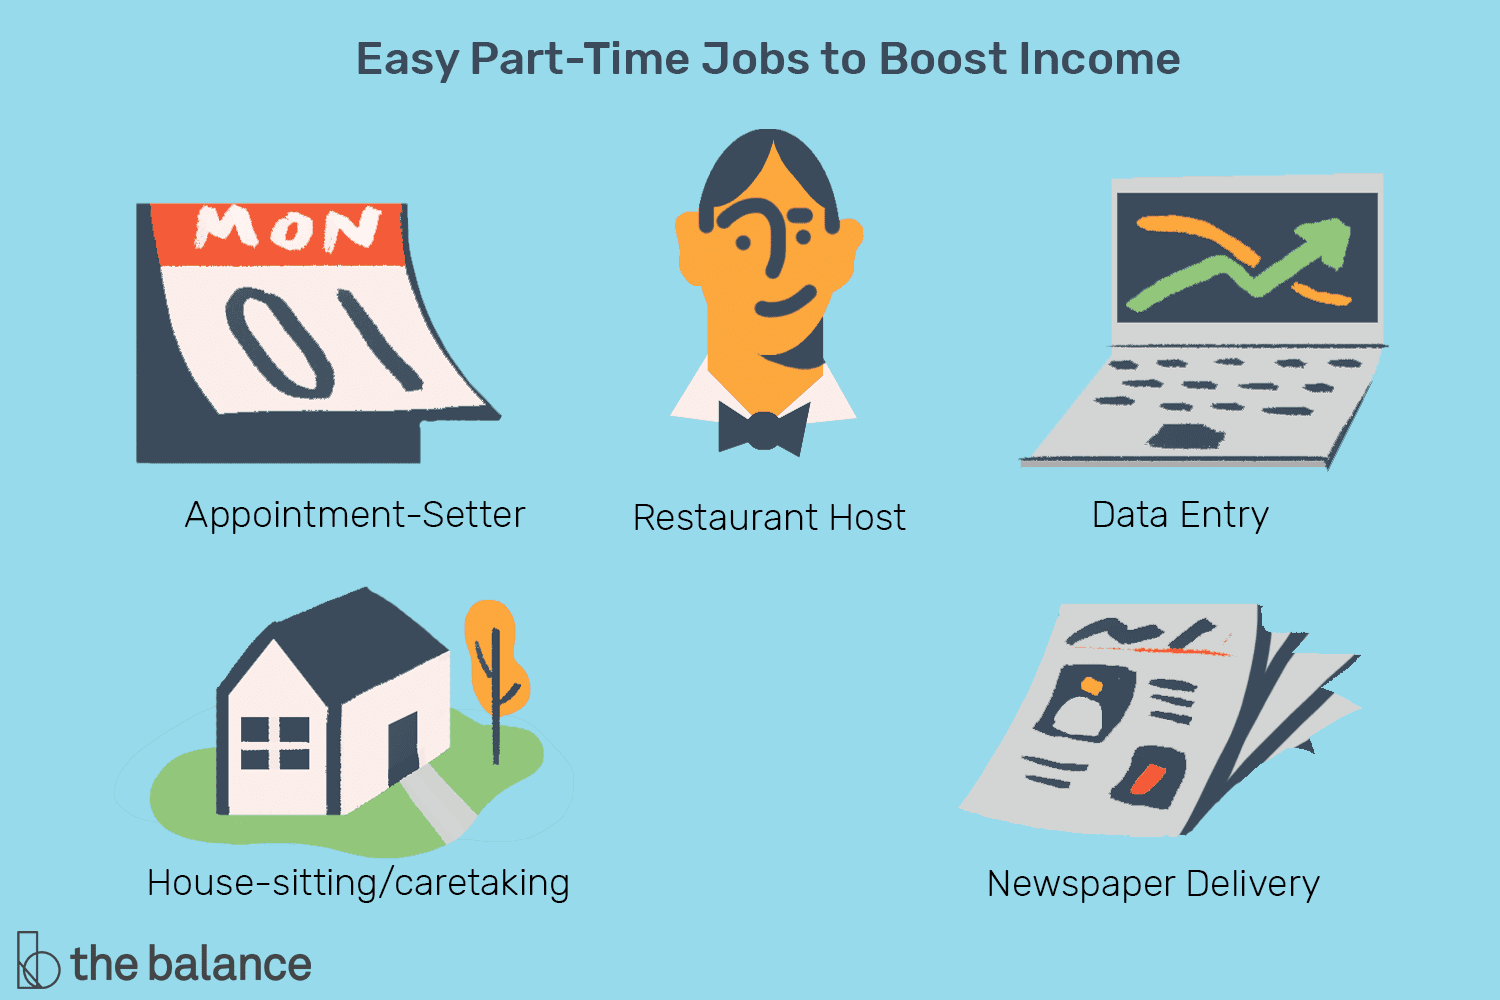 Easiest Part-Time Jobs to Boost Your Income